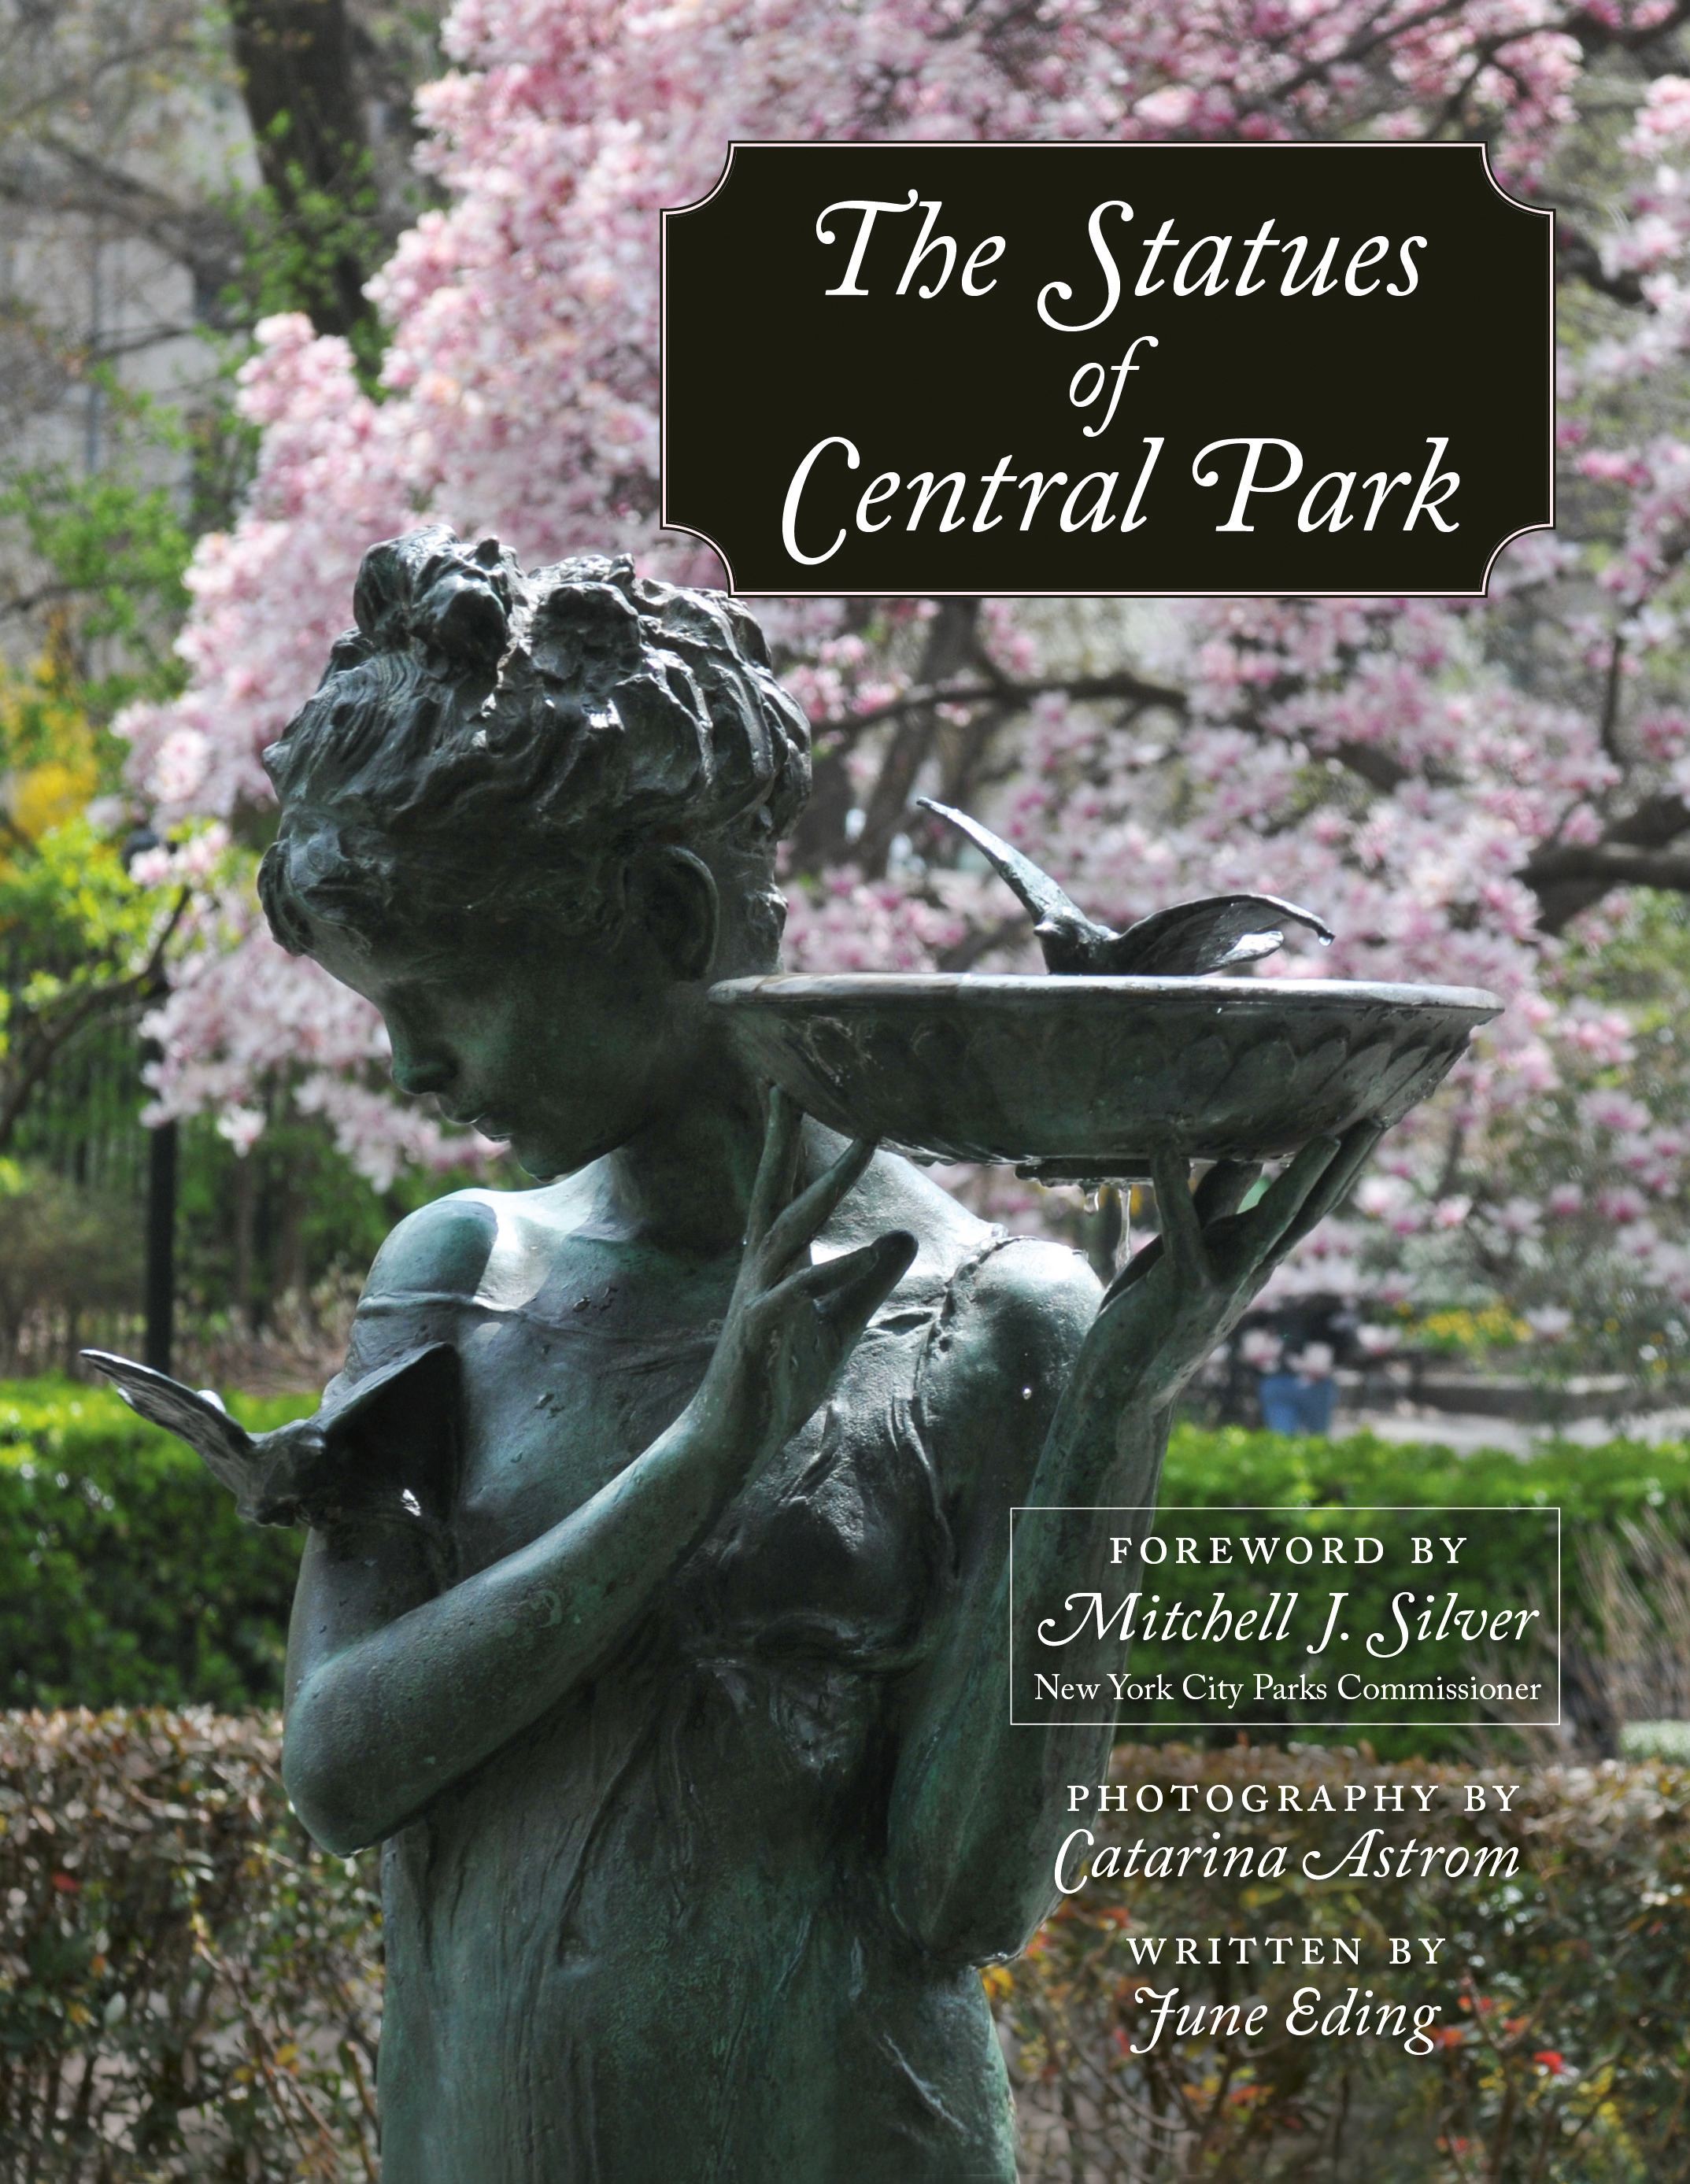 Book Review: 'The Statues of Central Park'